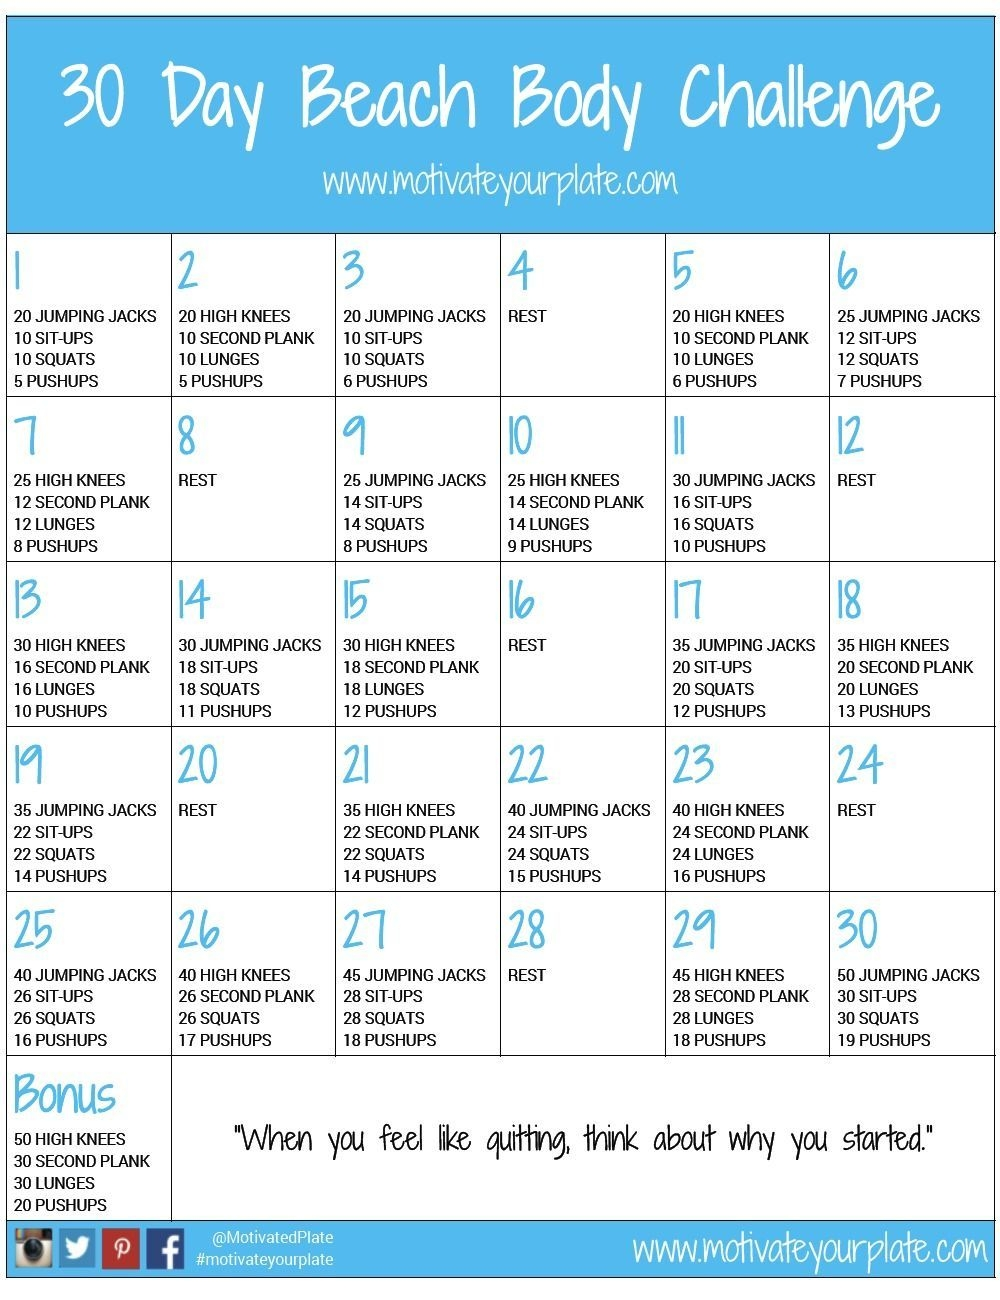 30 Day Printable Workout Schedule | 30 Day Beach Body